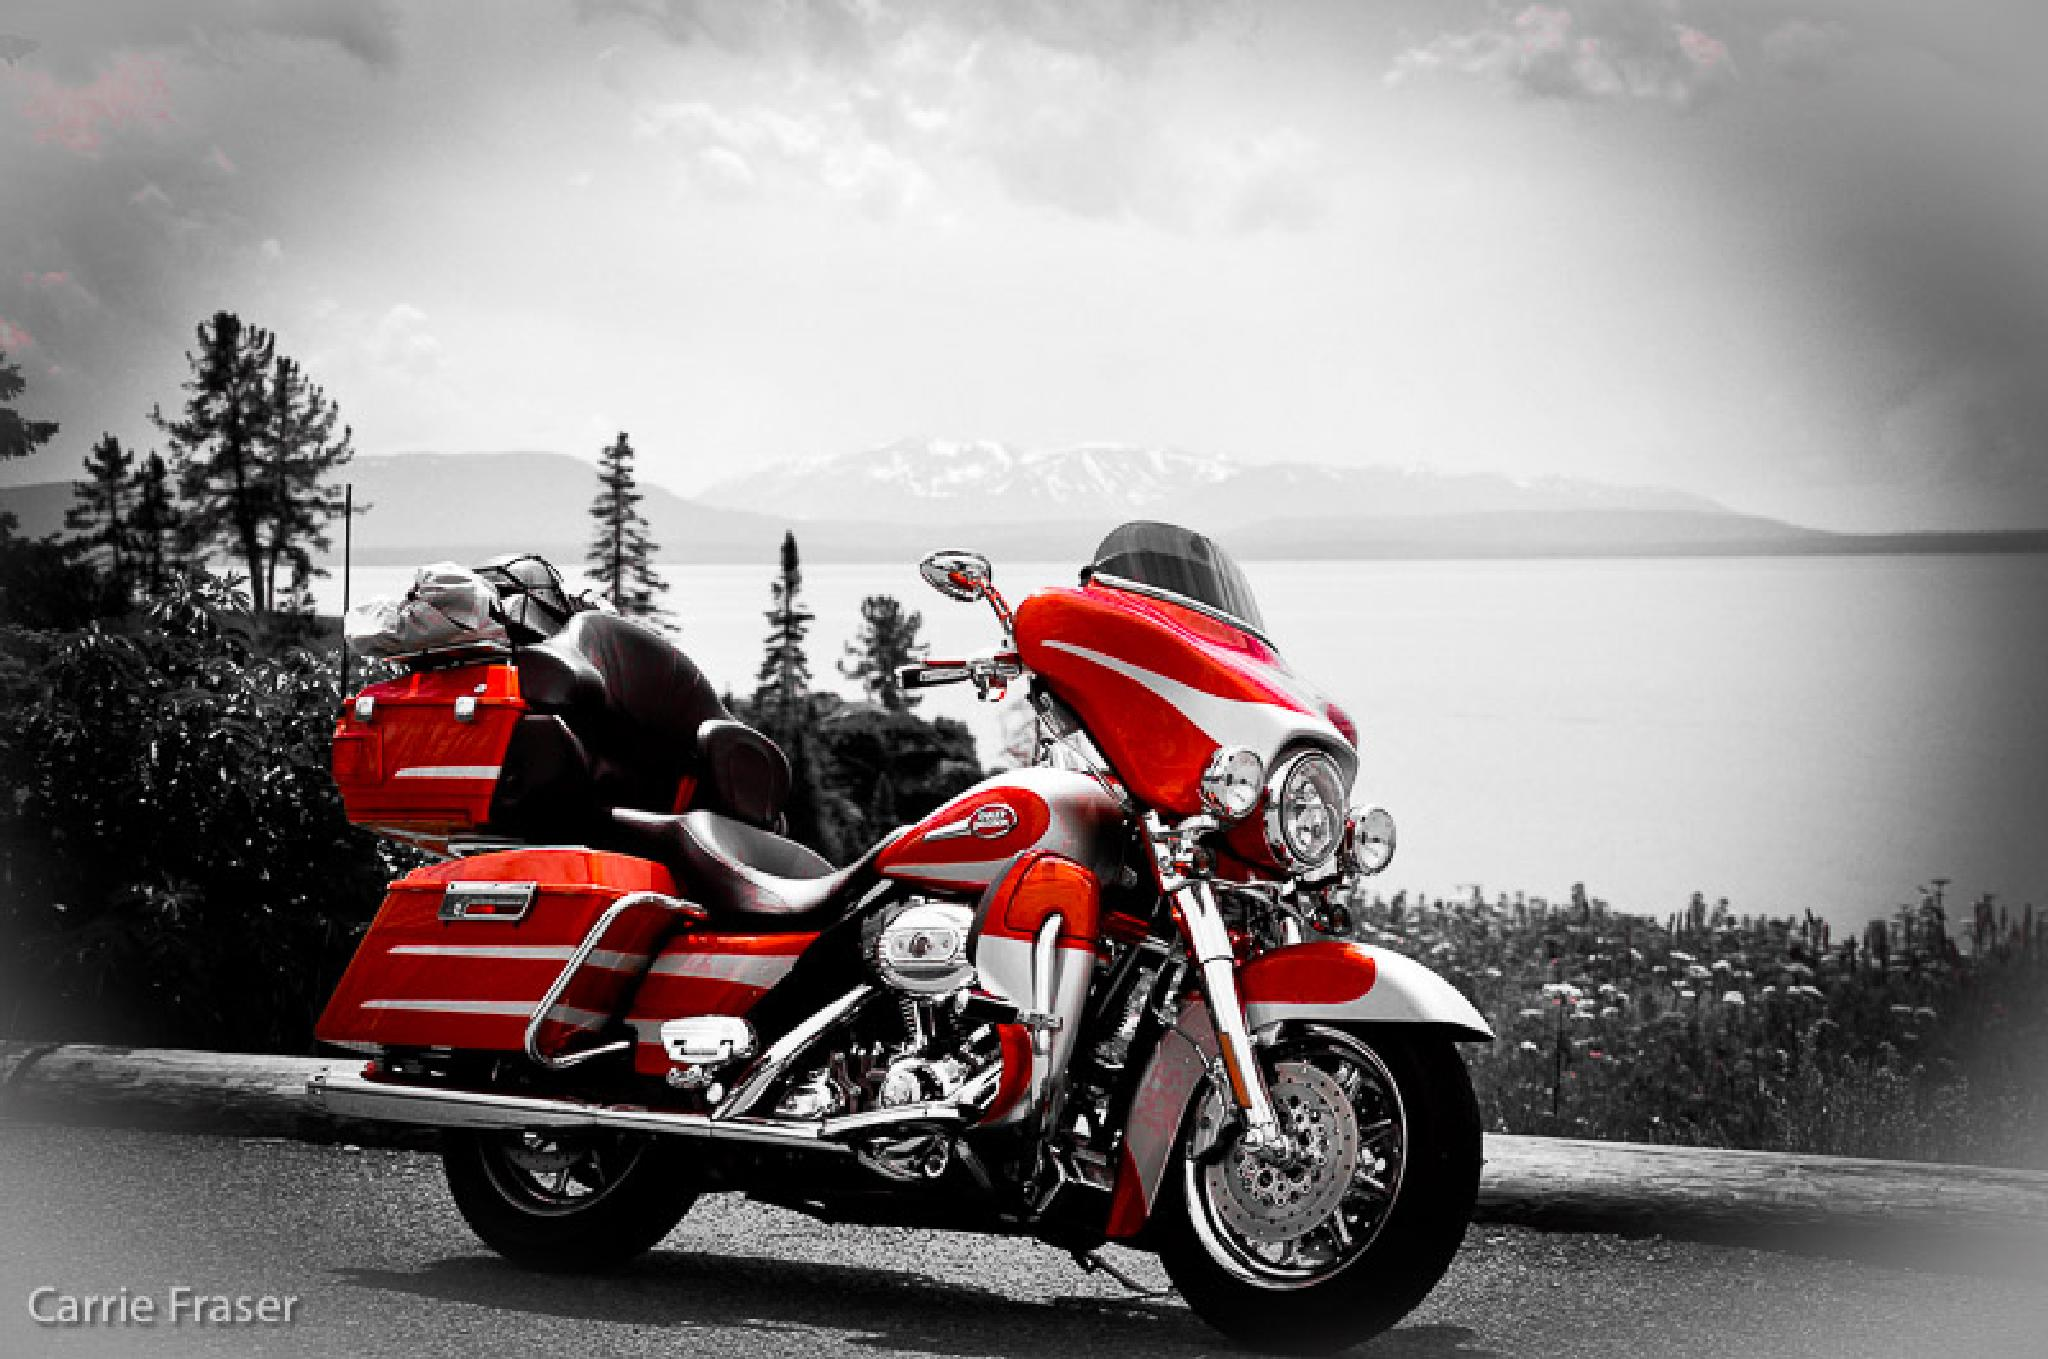 CVO shine in Yellowstone by Carrie Fraser